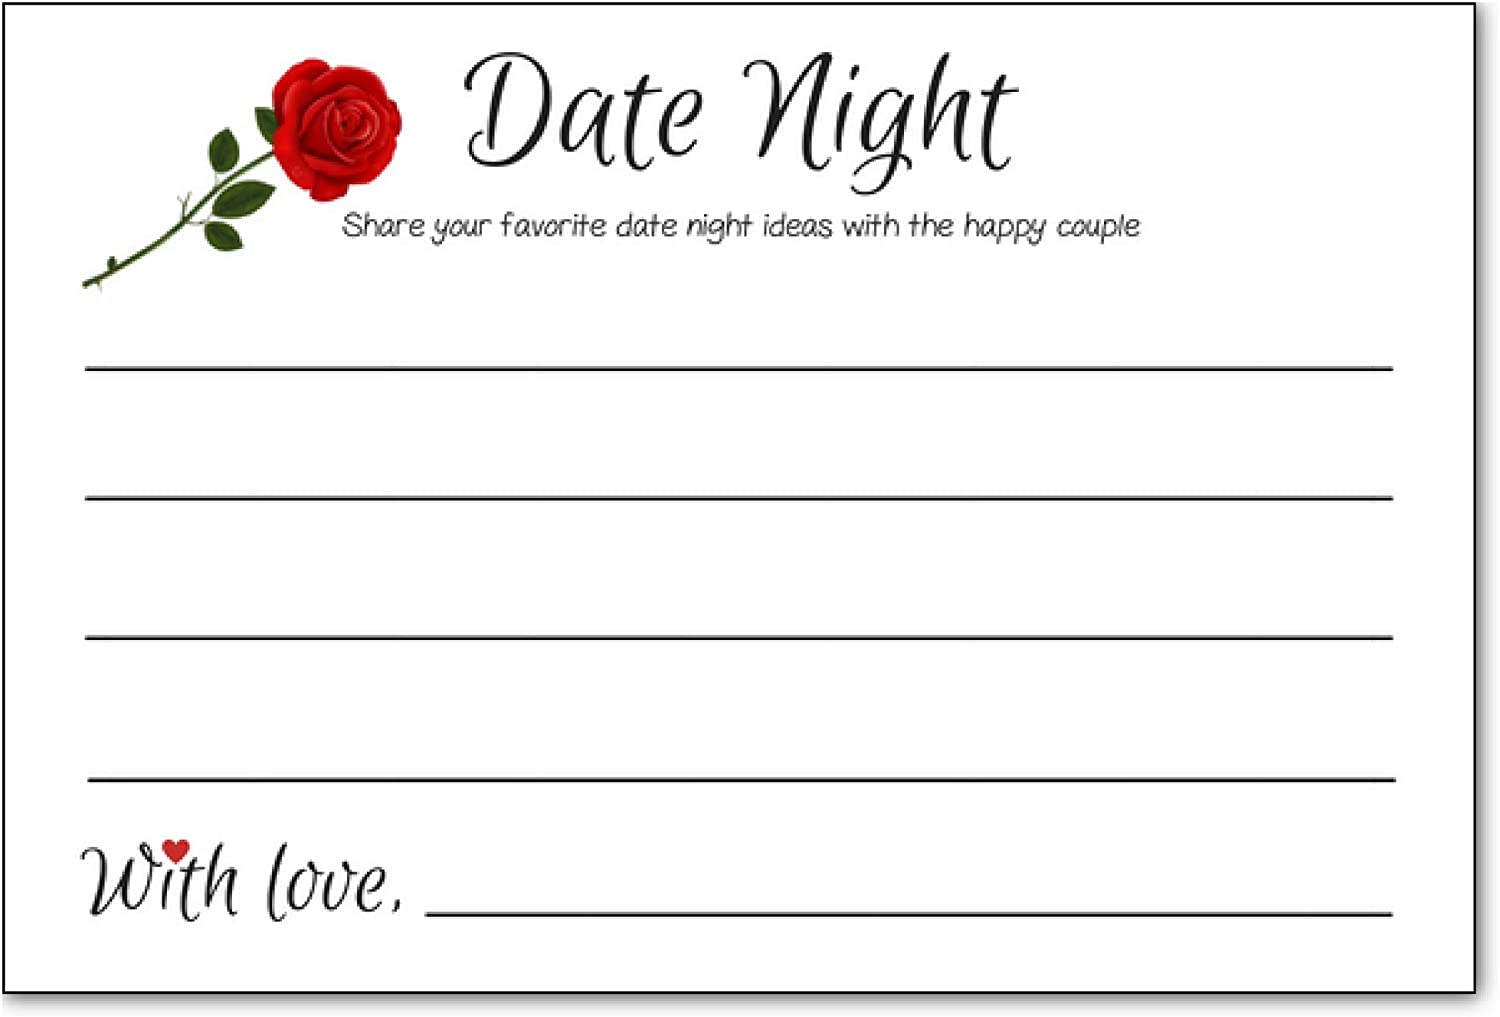 Date Night Ideas Cards For Married Couples Bridal Shower Ideas Wedding Reception Activities Rehearsal Dinner Bride And Groom Bachelorette Engagement Party Games Fun Date Night Ideas Jar 50 Pack Amazon Ca Office Products